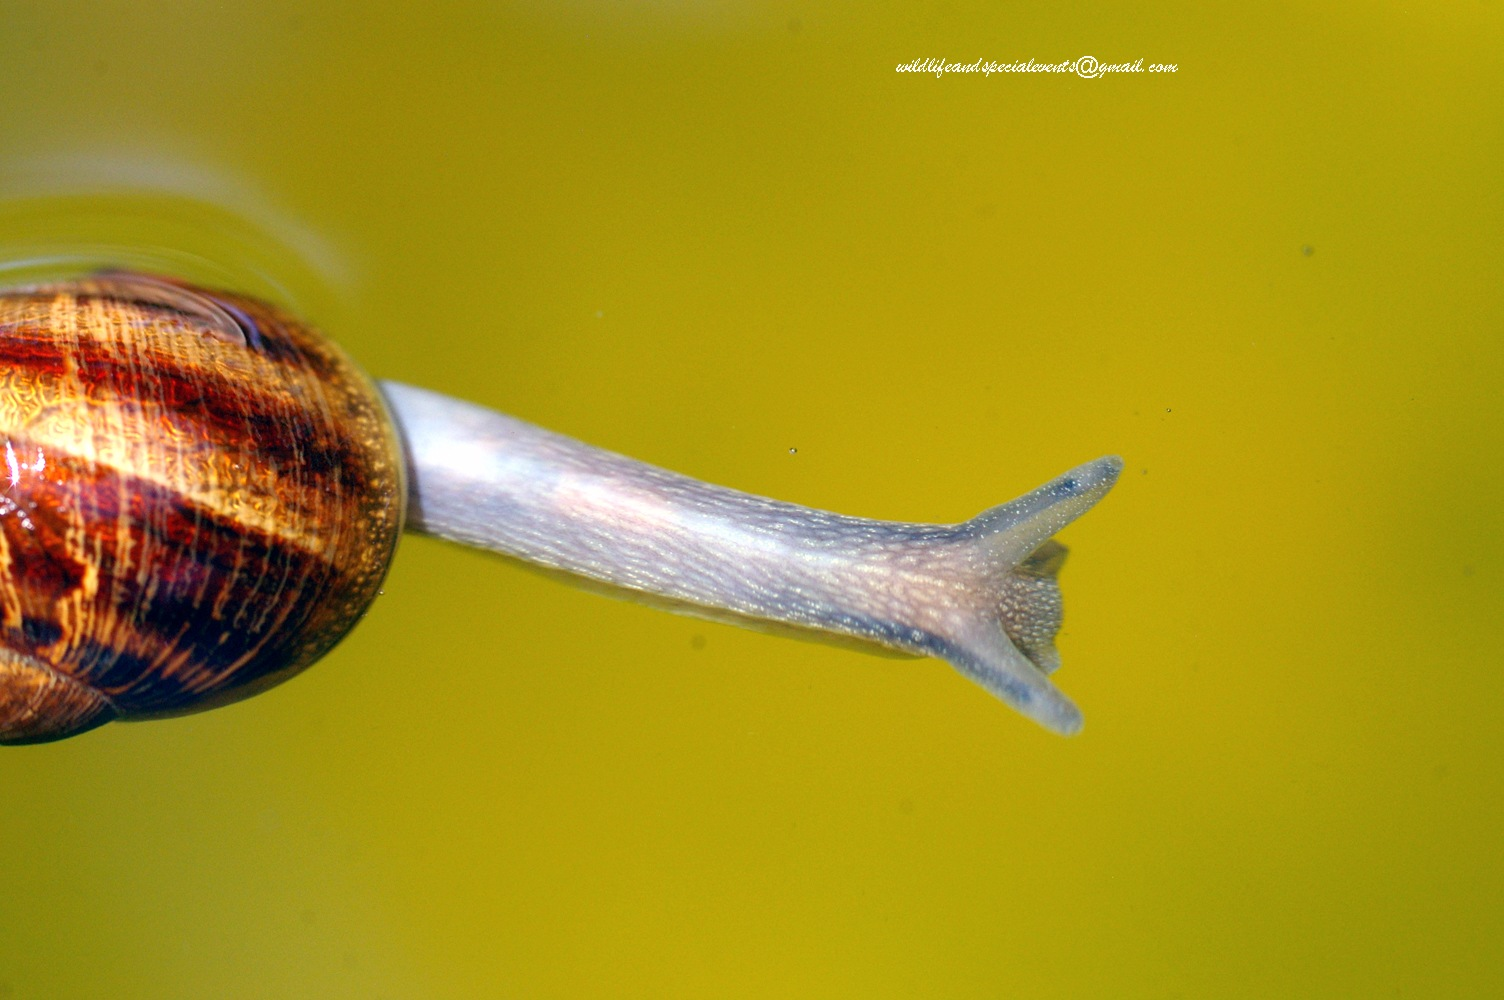 Swimming Snail by oosie